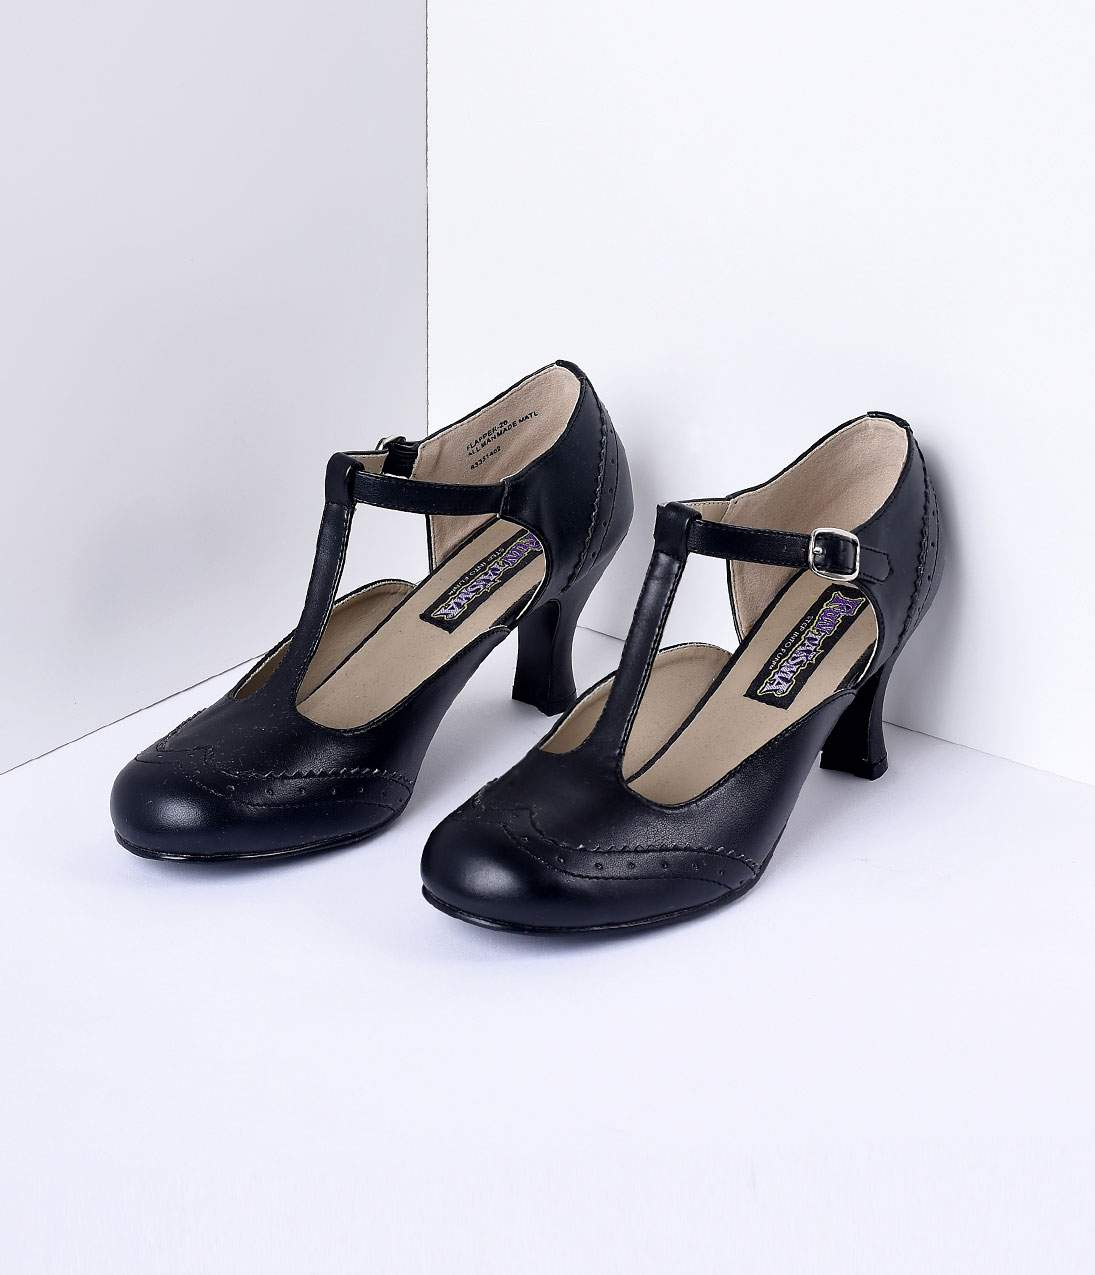 Mary Jane Shoes Negro Round Toe Bows PU Leather Mujeres Mid Low Heels UmH4JIR5